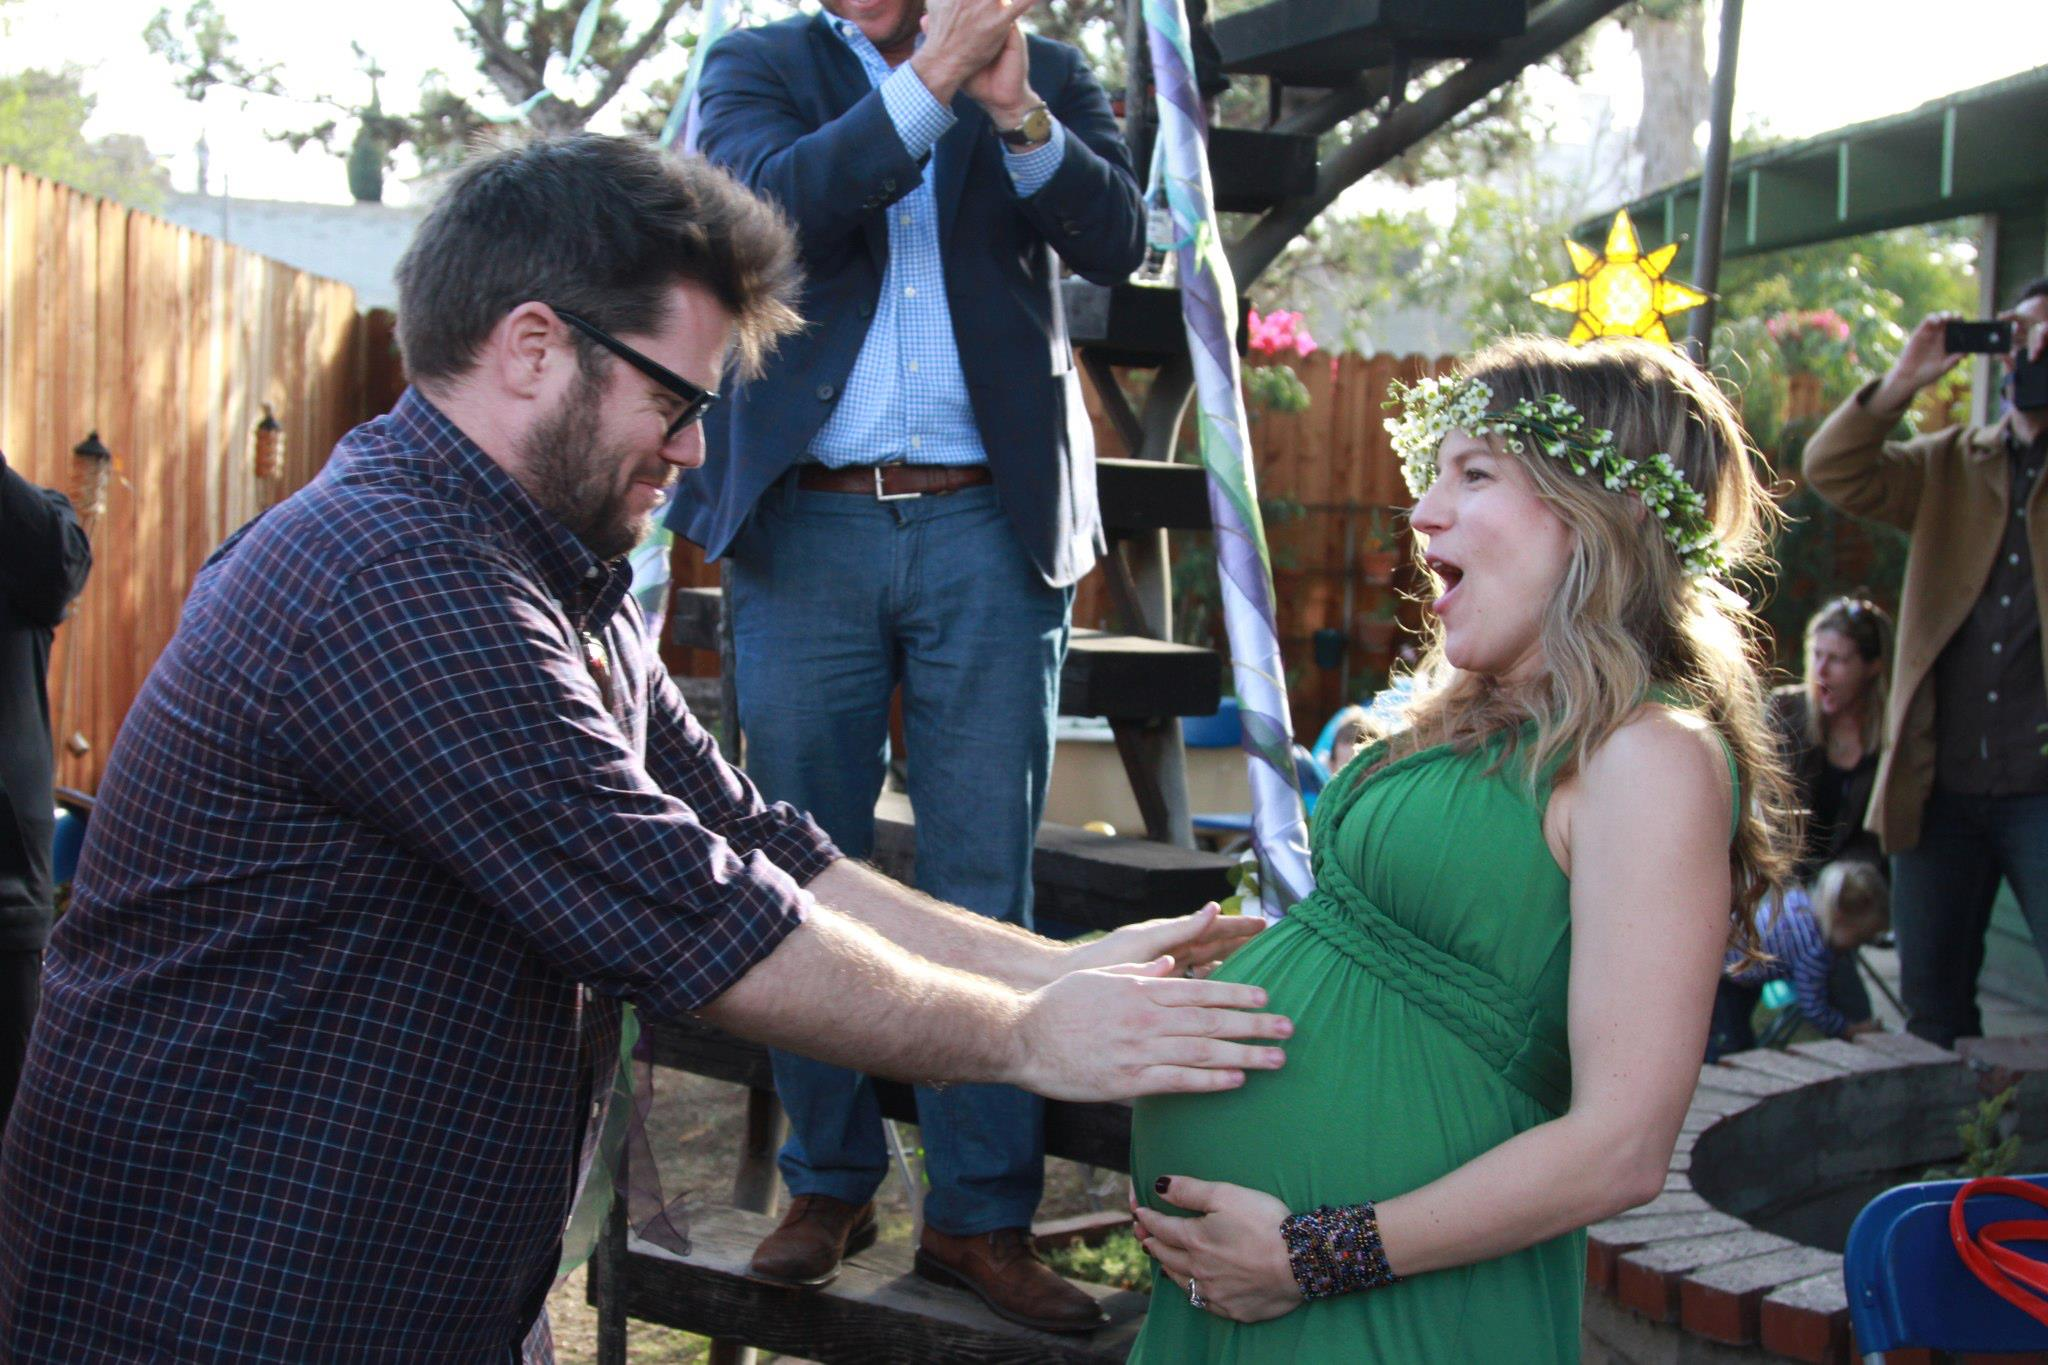 Getting Married In My Backyard : Lynn, 7 months pregnant, getting married in her backyard One year to